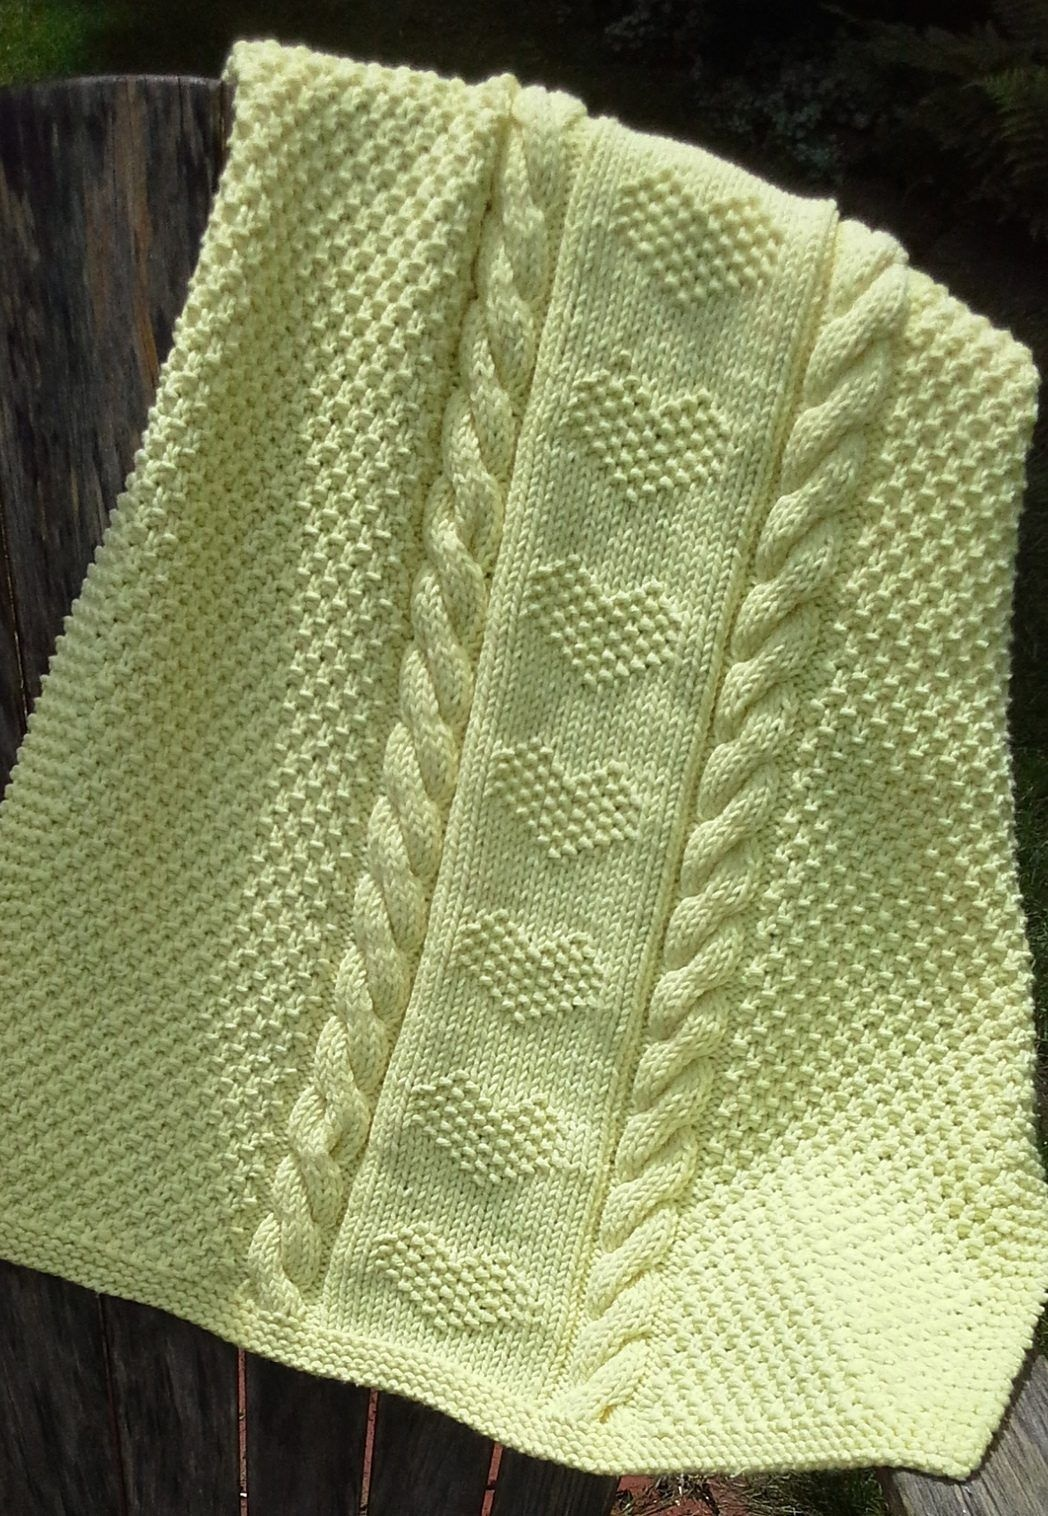 Free Knitting Pattern For Love Is A Blanket - Marji Lafreniere's - Free Printable Knitting Patterns For Baby Blankets